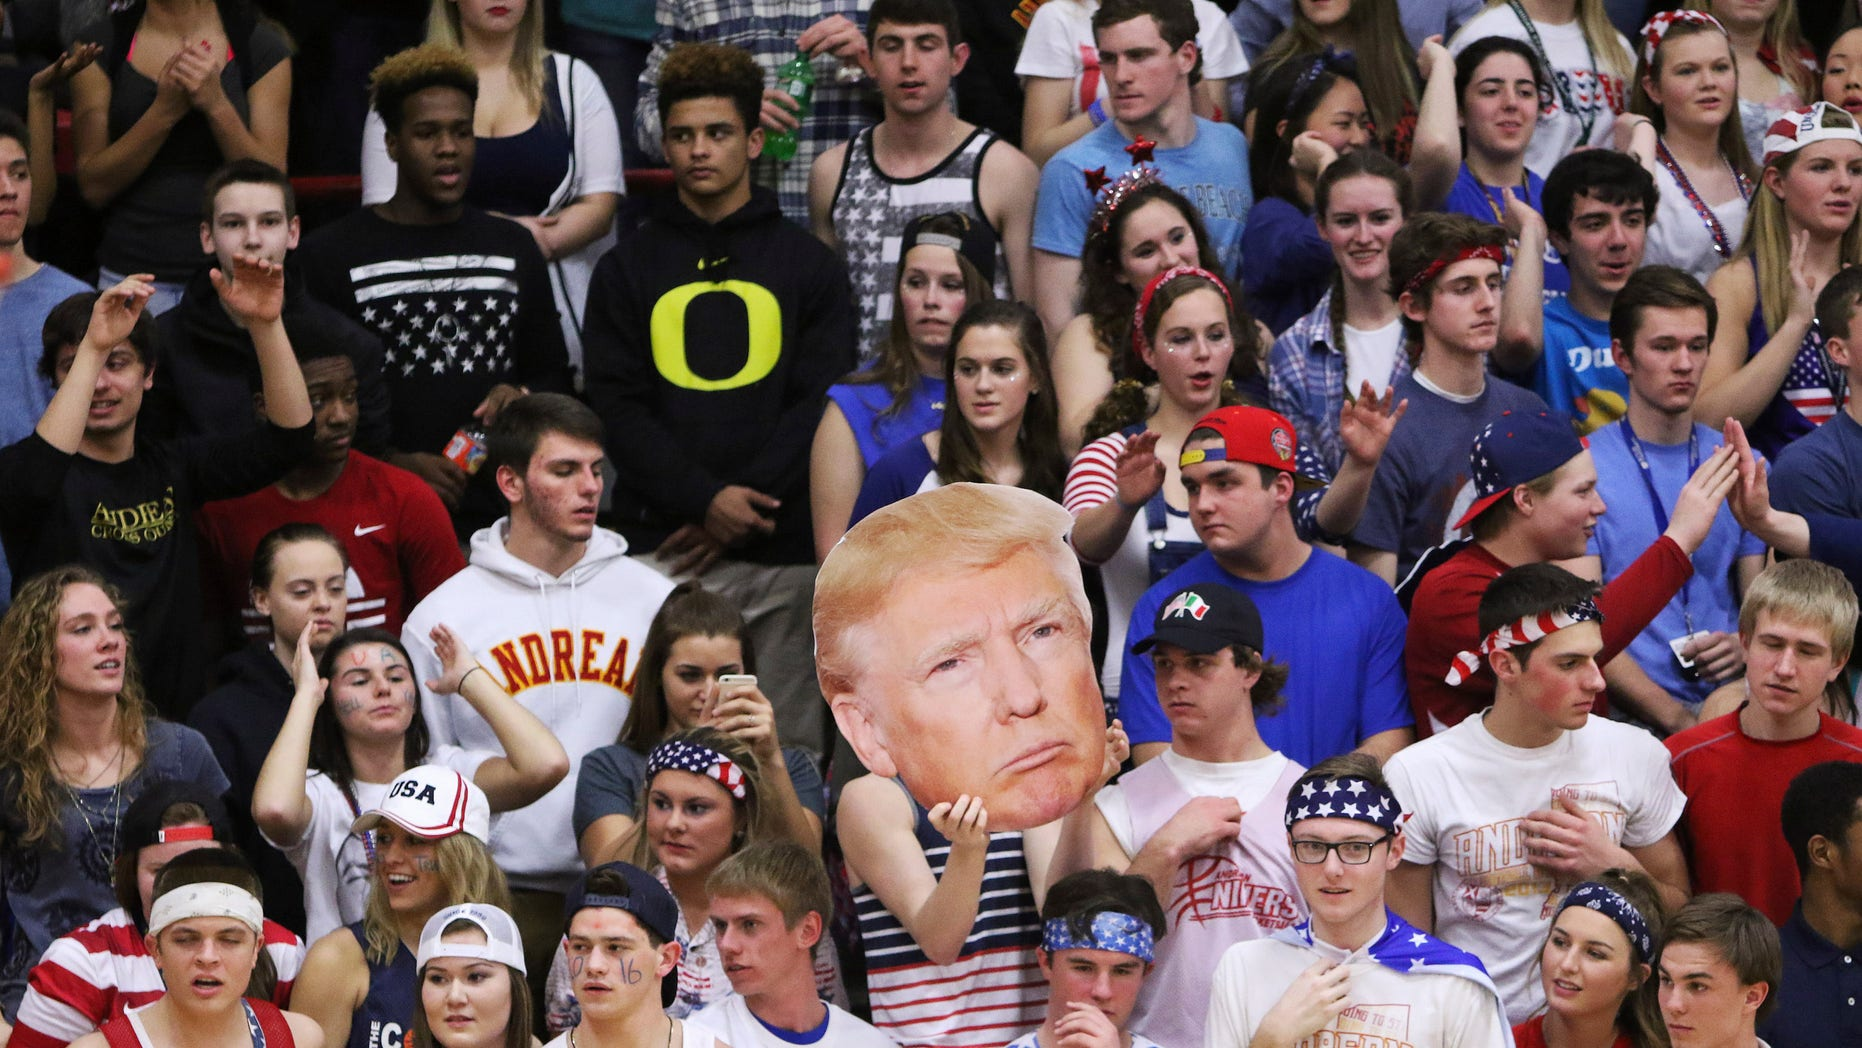 The Andrean High School student section holds up a picture of GOP presidential candidate Donald Trump during their school's basketball game against Bishop Noll Institute Friday.